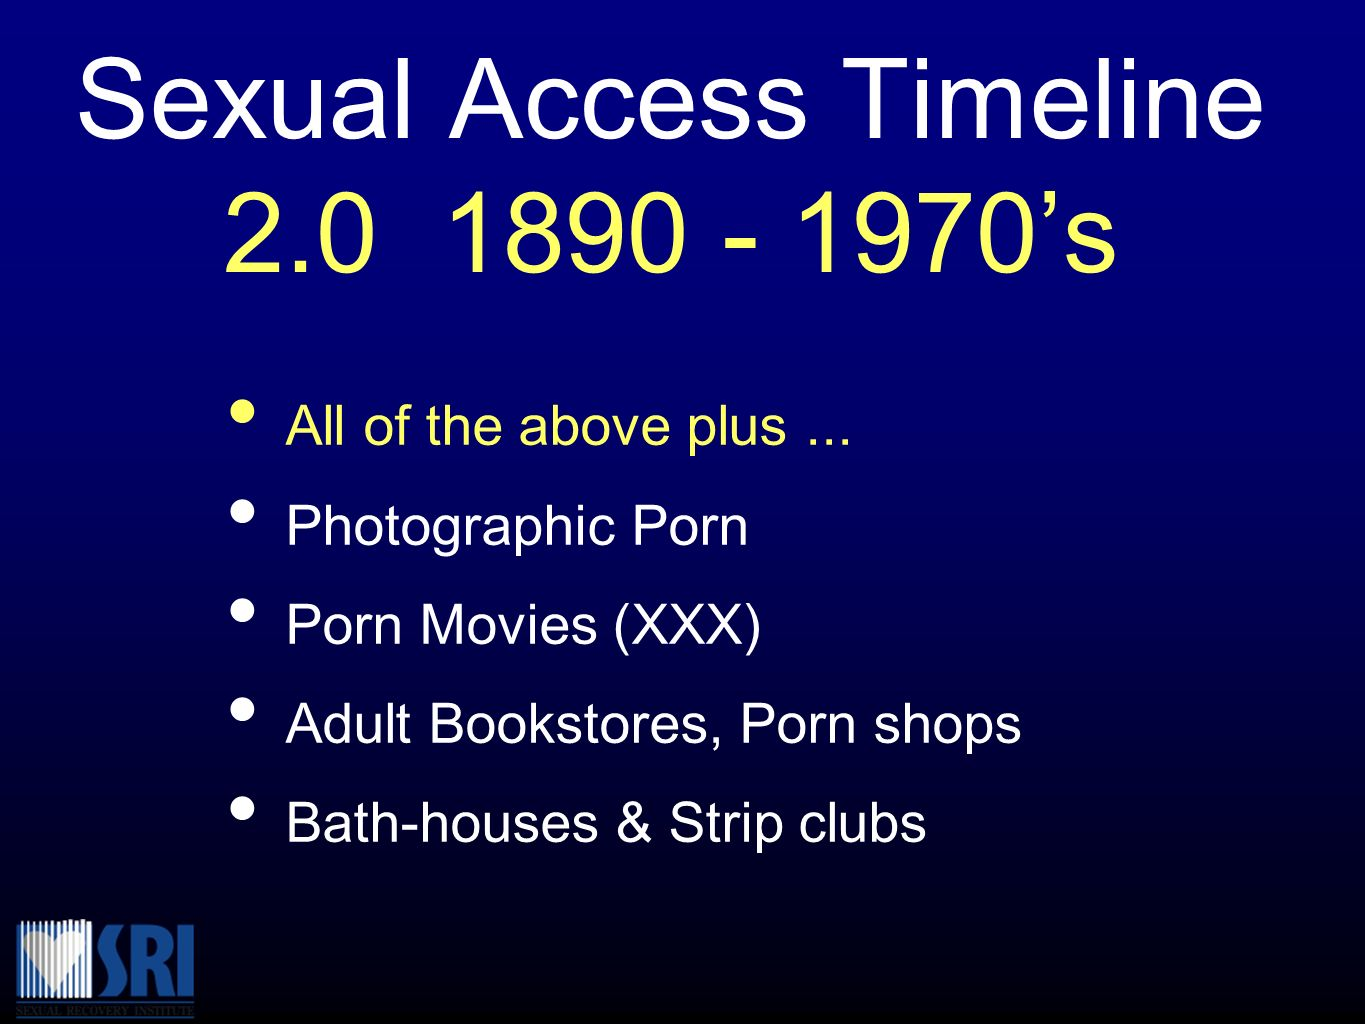 Sexual Access Timeline 's